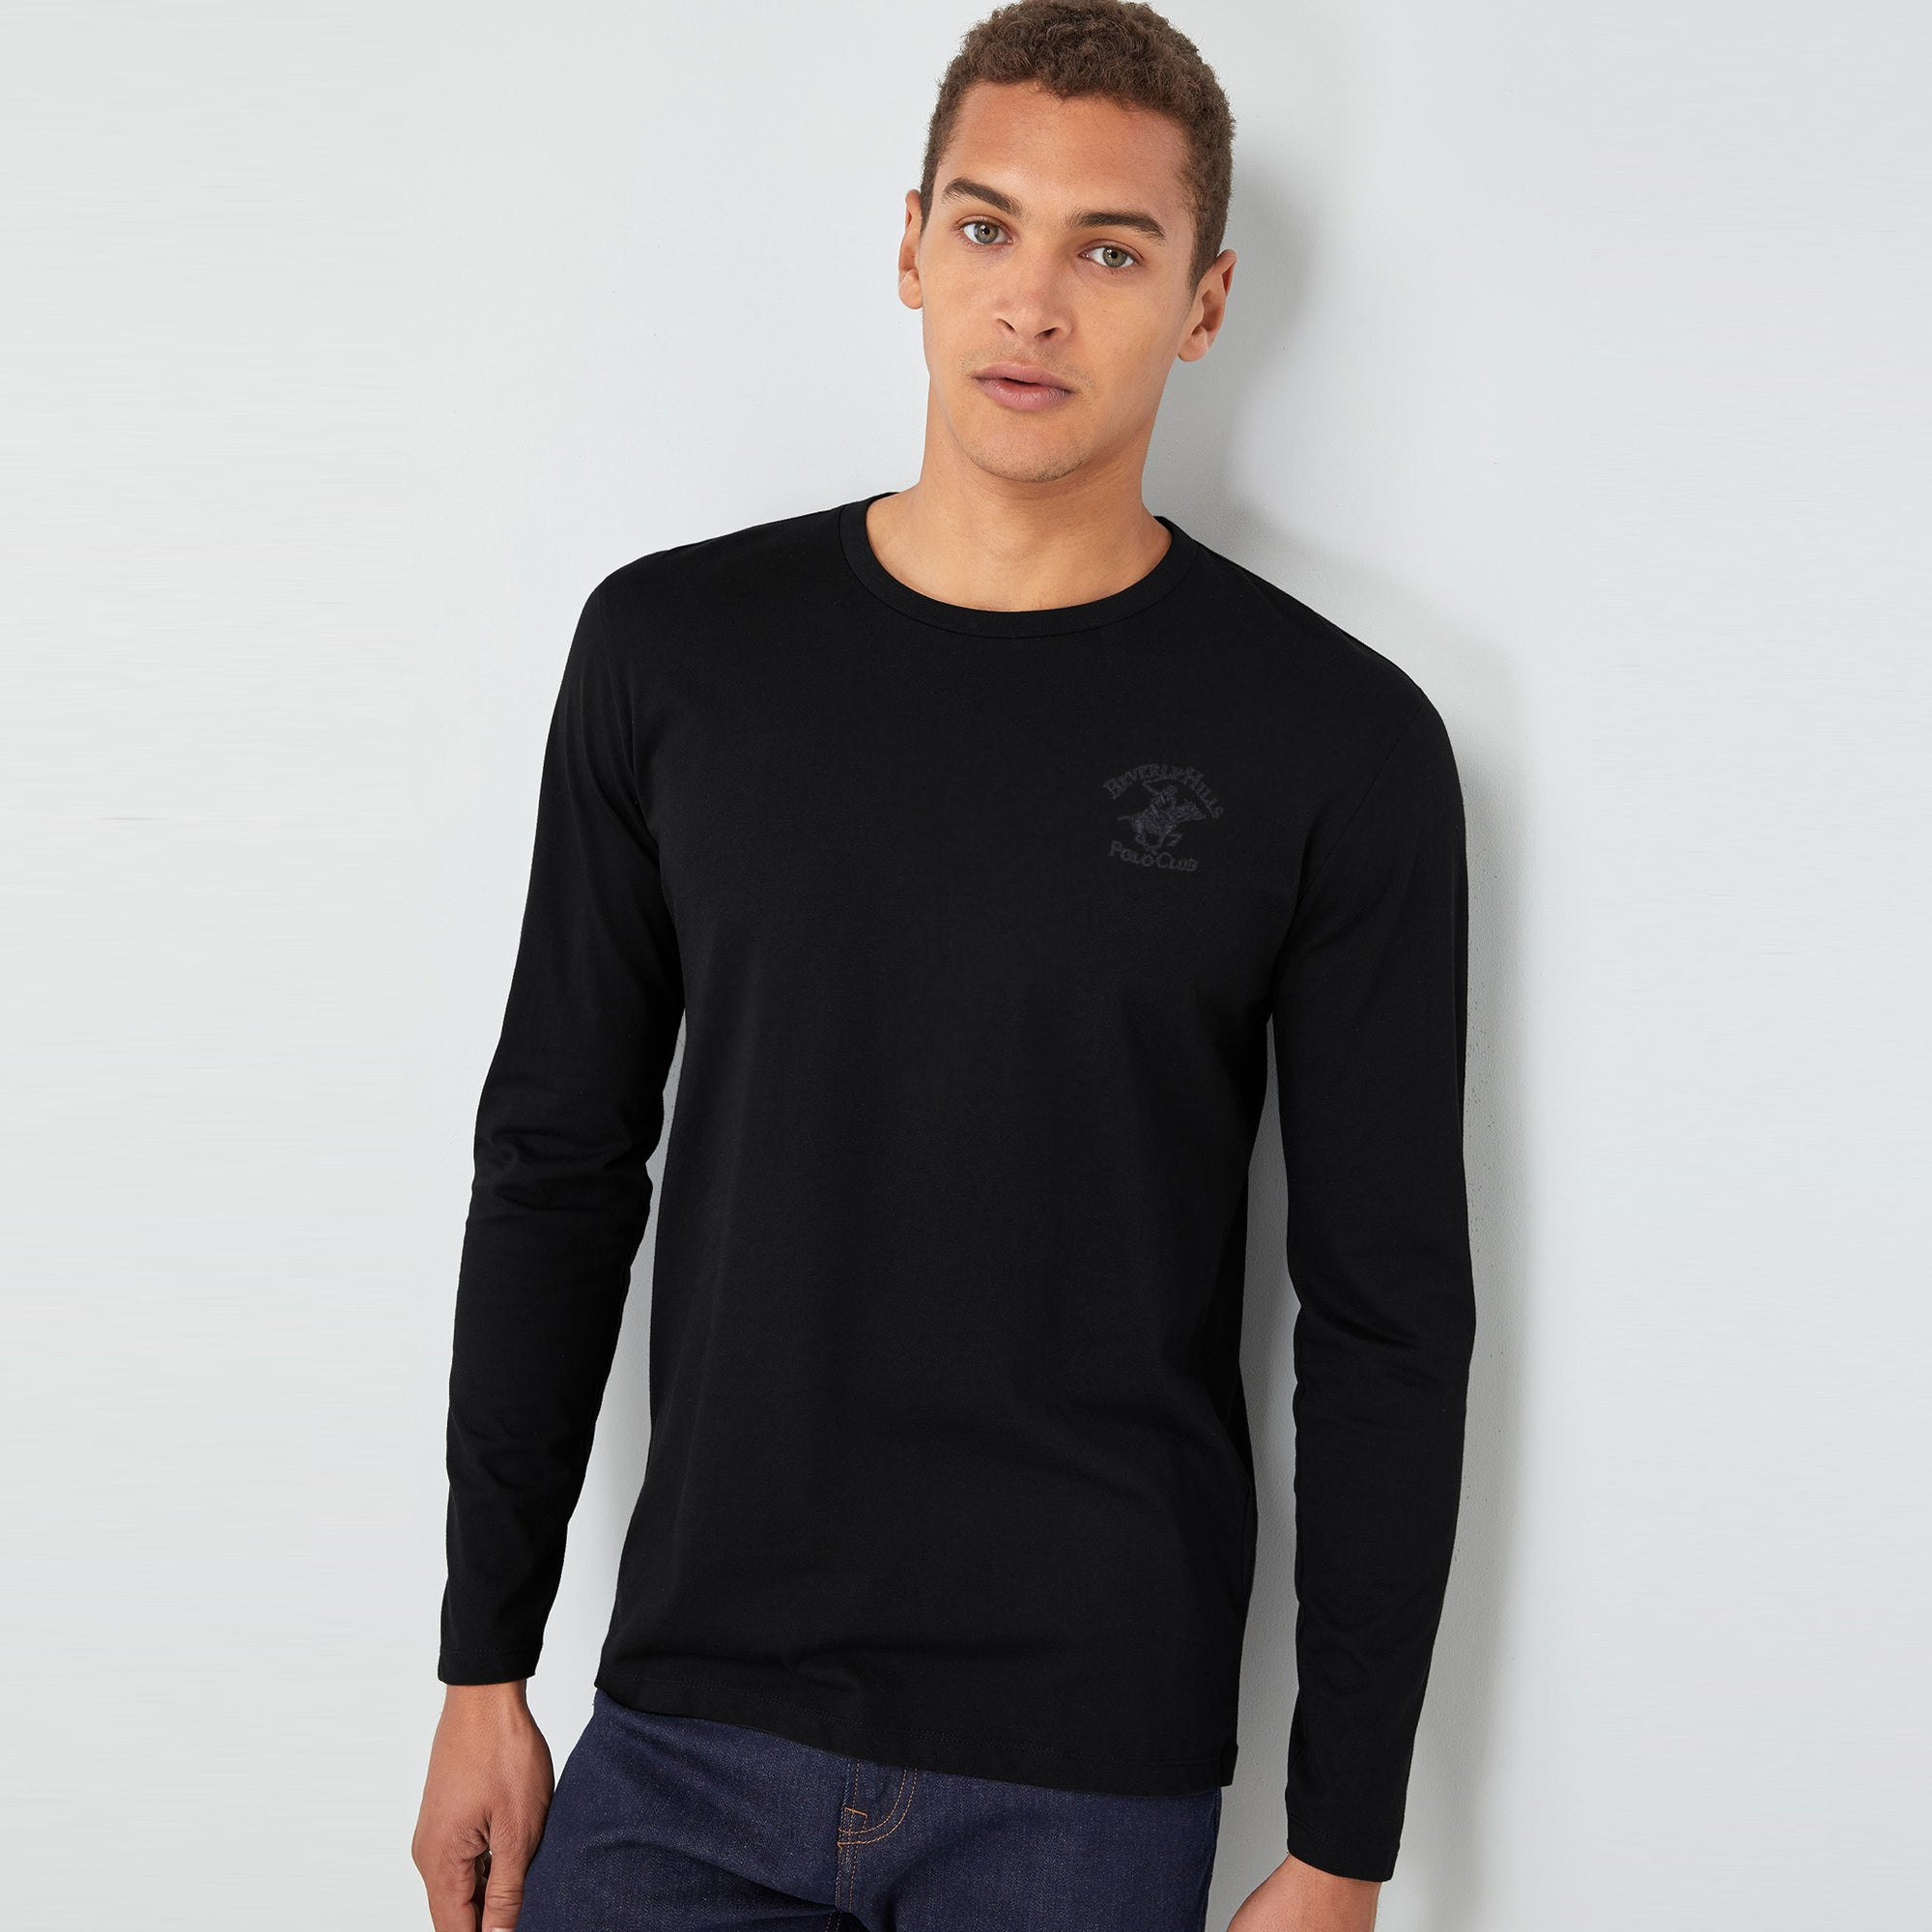 Beverly Hills Polo Club Single Jersey Shirt For Men-Black-BE8139